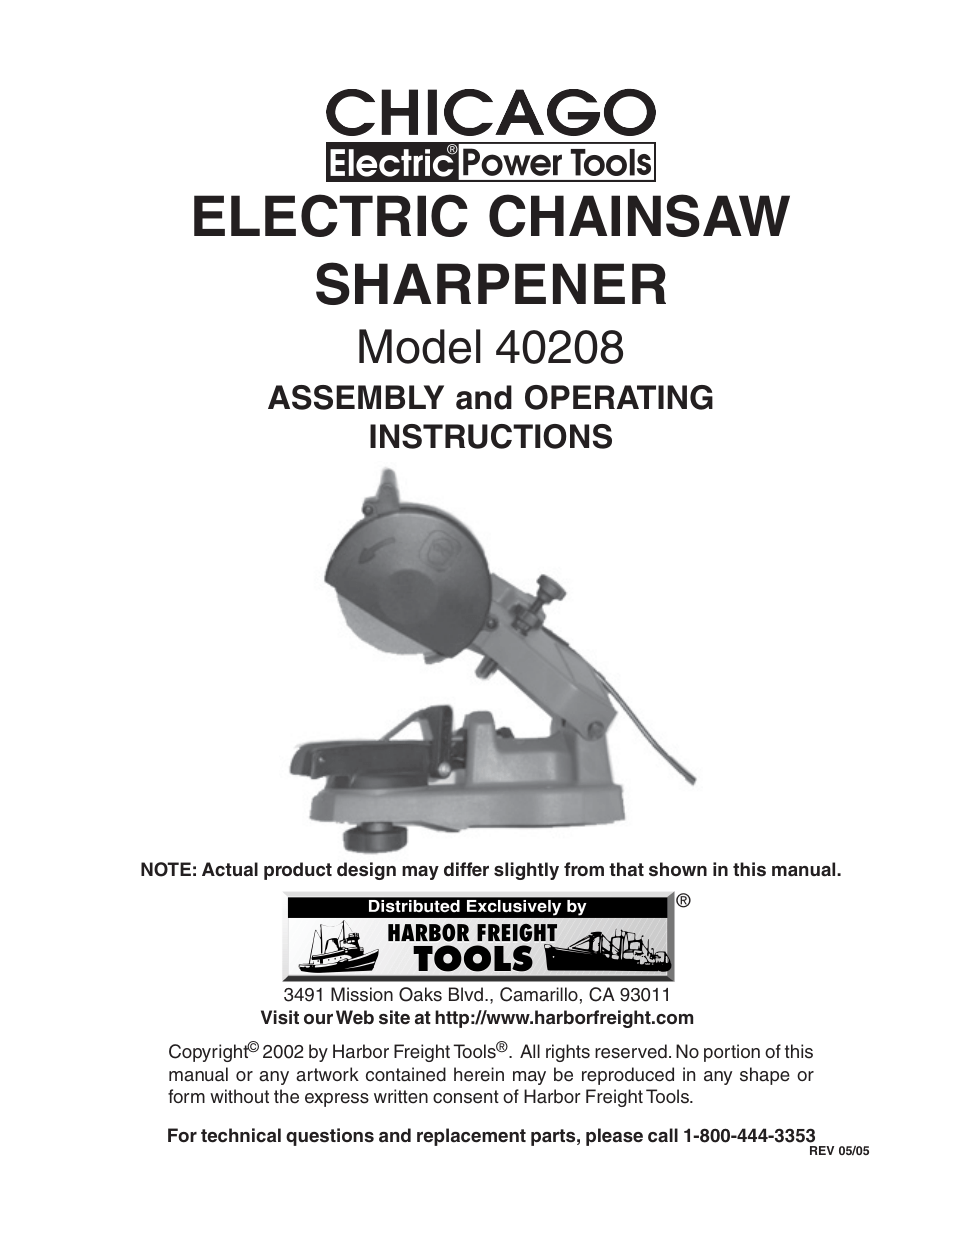 Harbor Freight Chainsaw Sharpener Manual